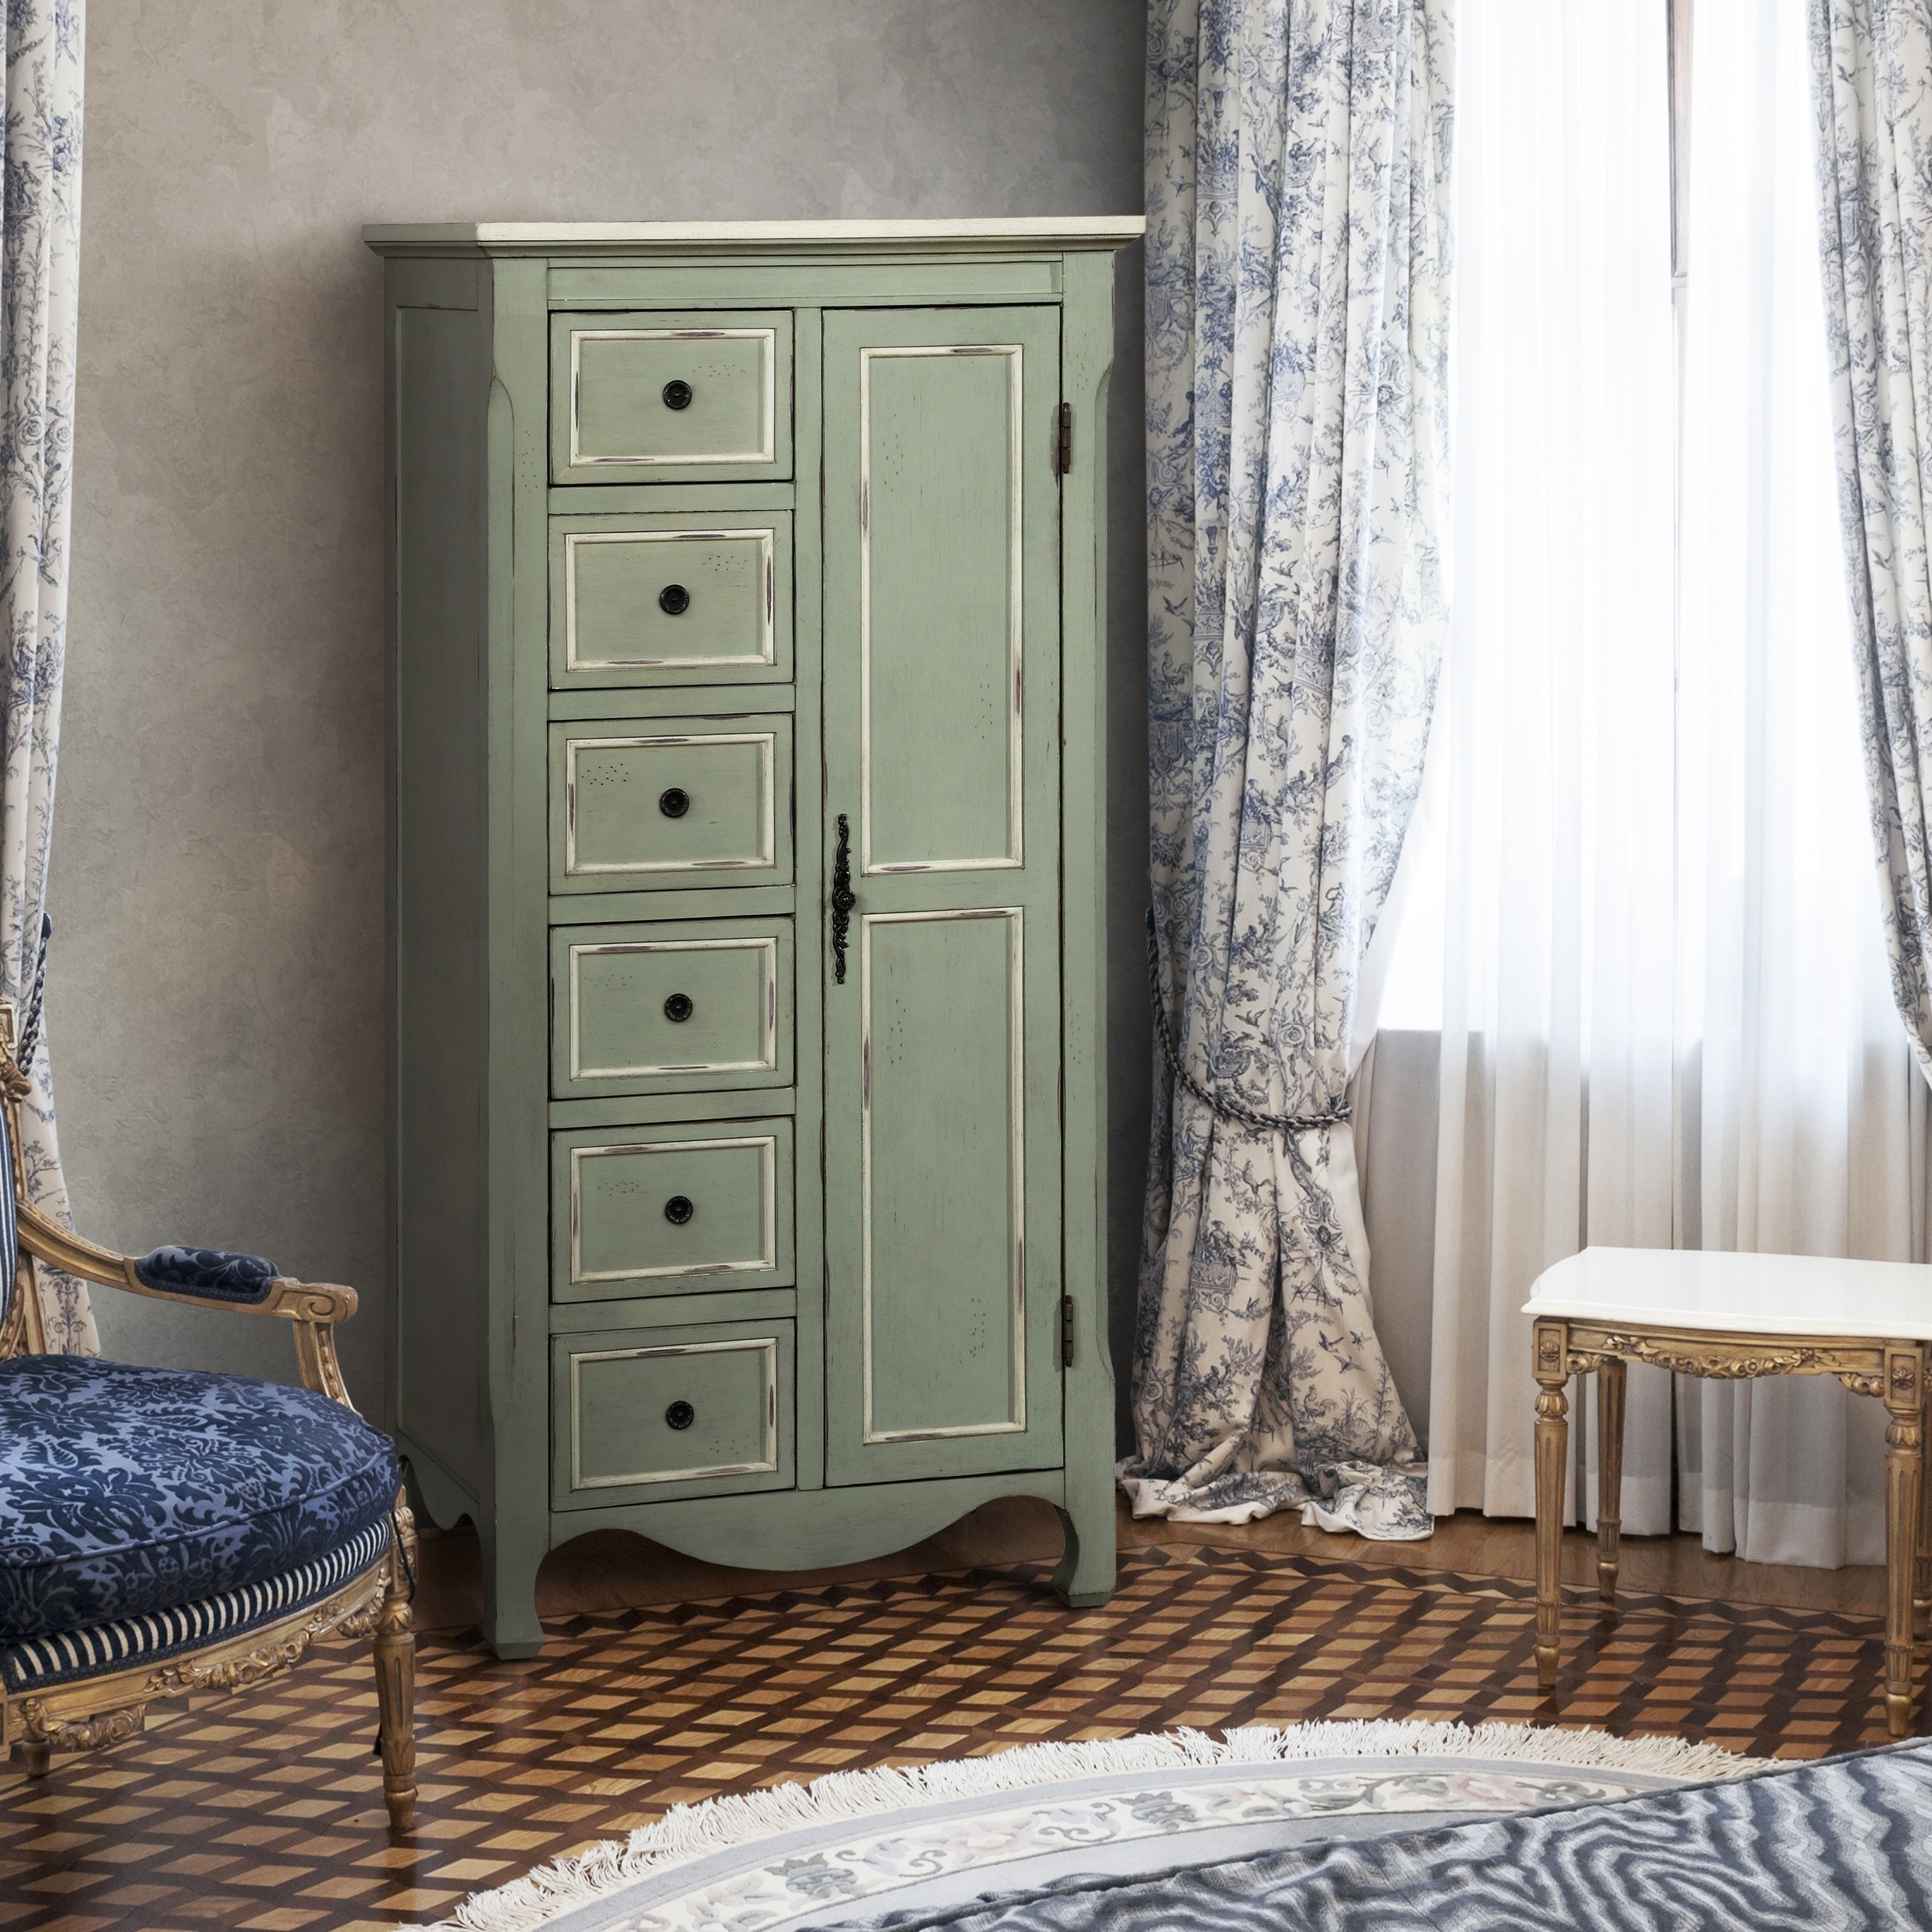 Furniture Of America Vintage Style Distressed Light Teal Multi Storage Floor Cabinet Free Shipping Today 13009025